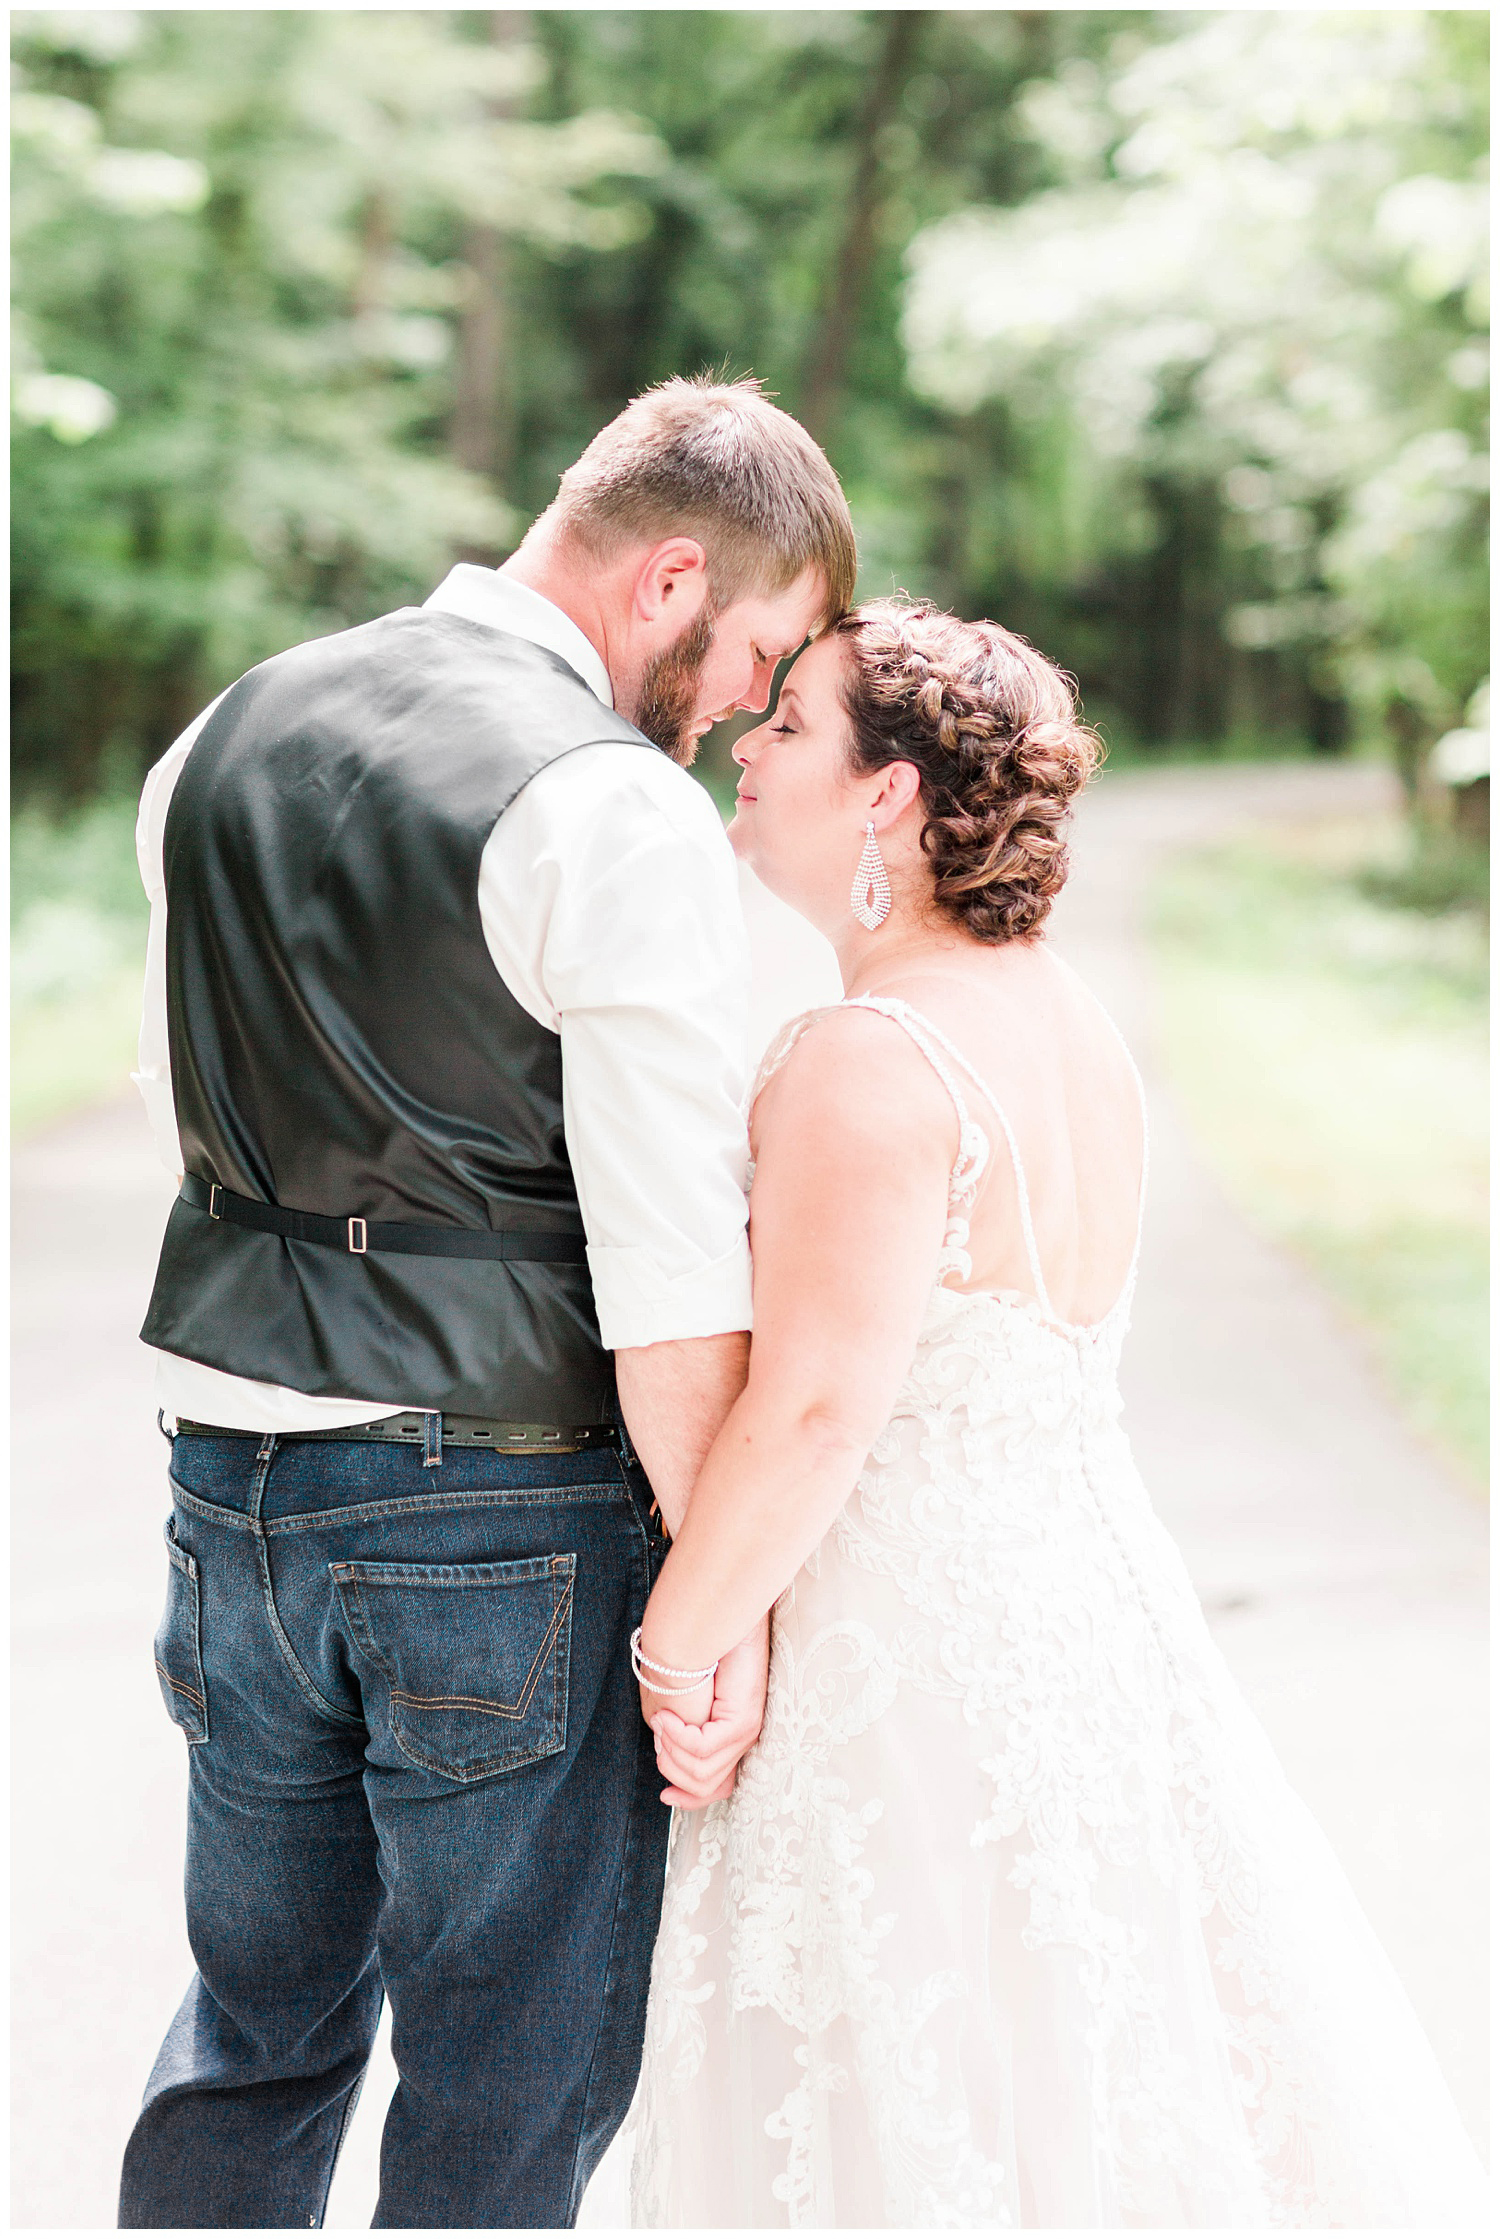 Travis gently nuzzles his new bride in the middle of a forest pathway | Iowa Wedding Photographer